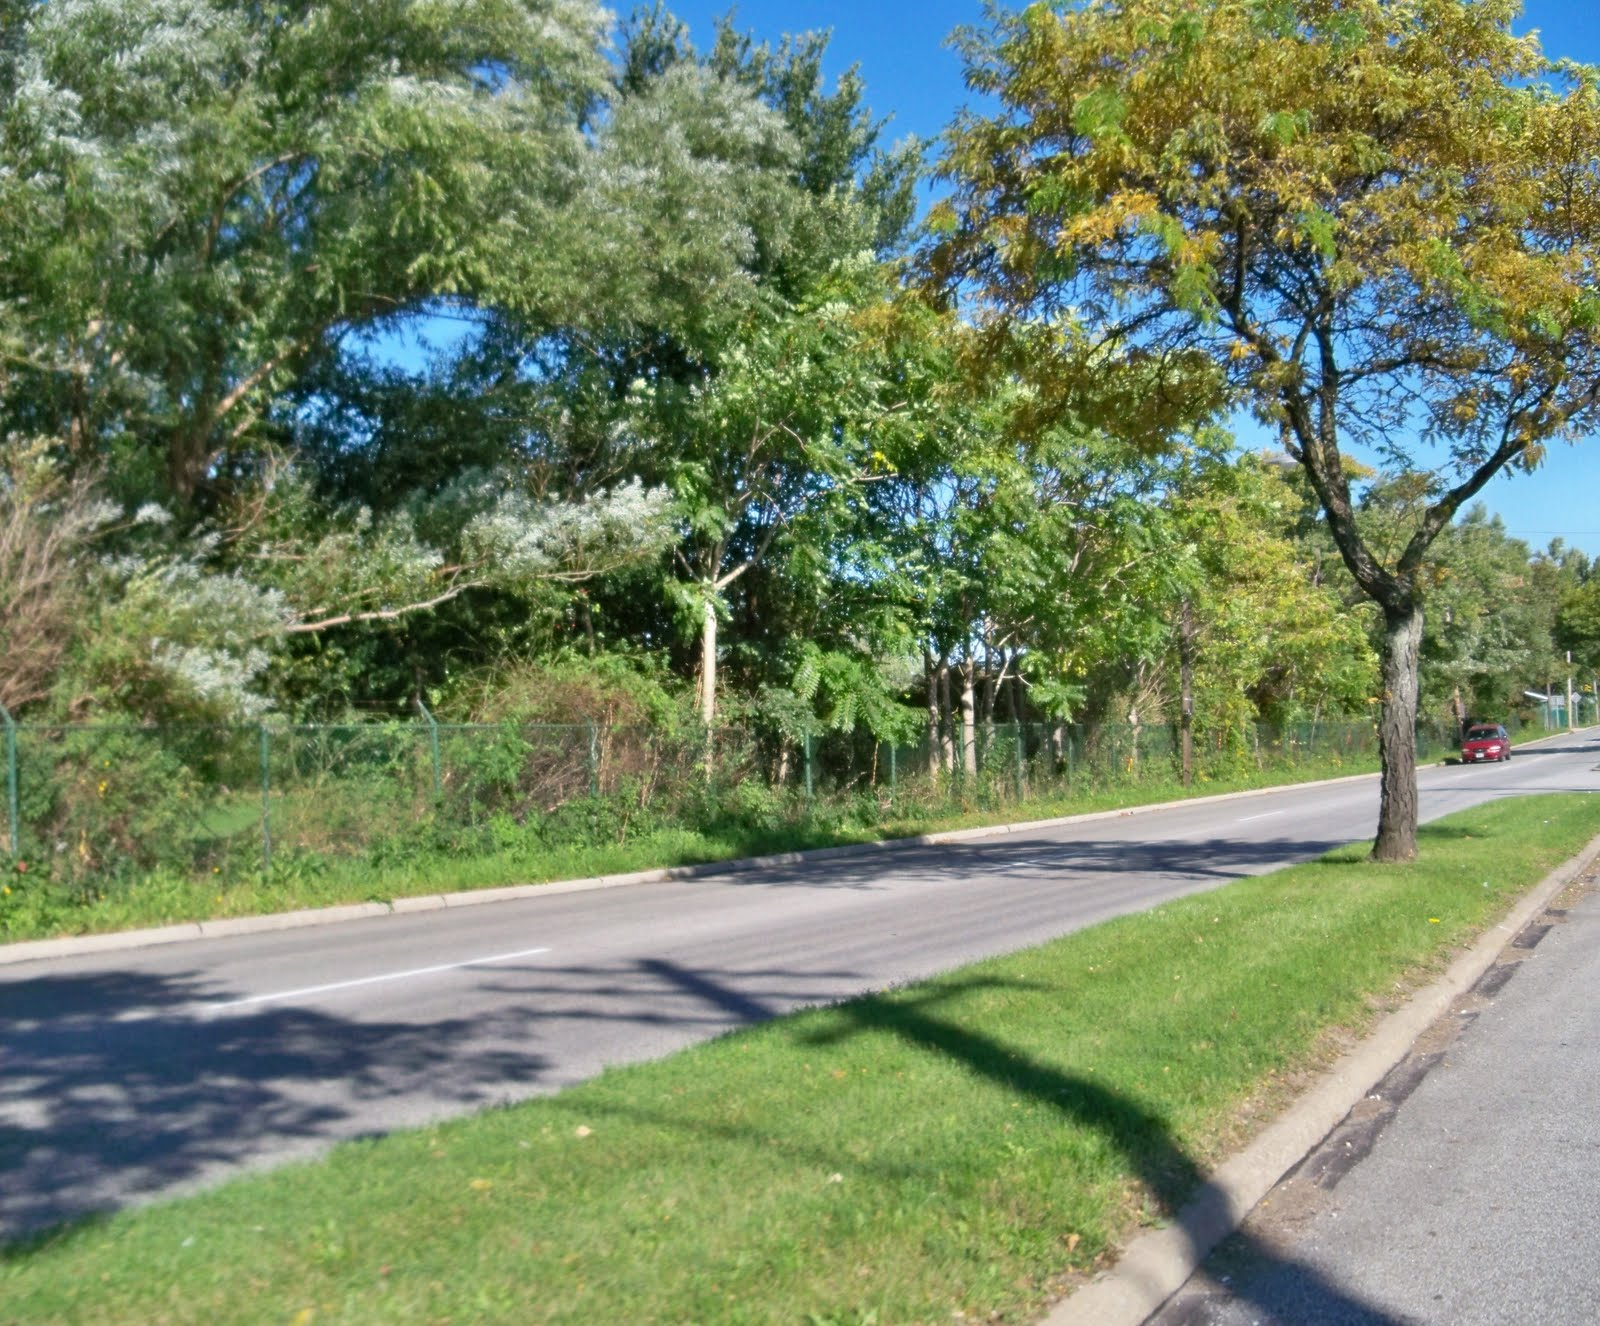 as these pictures demonstrate warrensville center road is currently underused traffic on that road peaked around 1970 when the population of the area